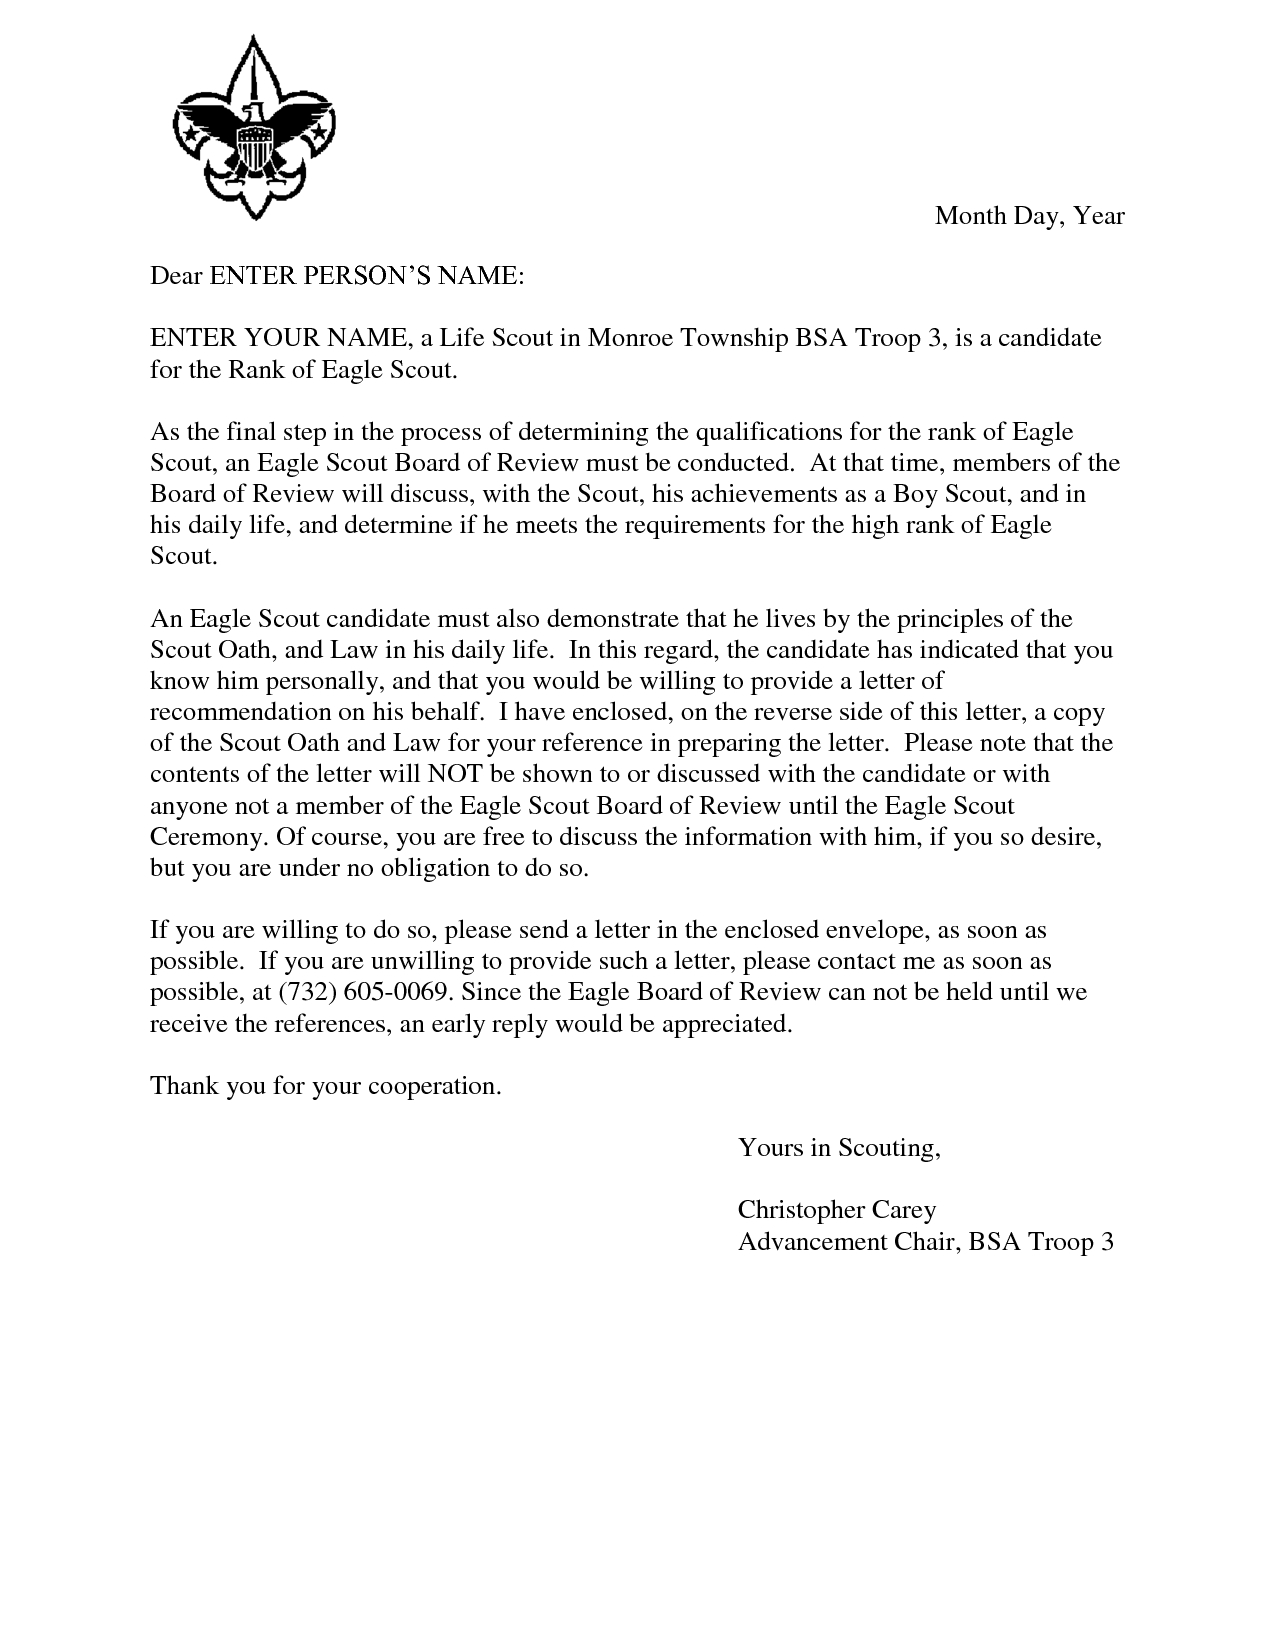 Free Printable Letter Of Recommendation Template - Eagle Scout Reference Request Sample Letter Doc 7 by Hfr990q